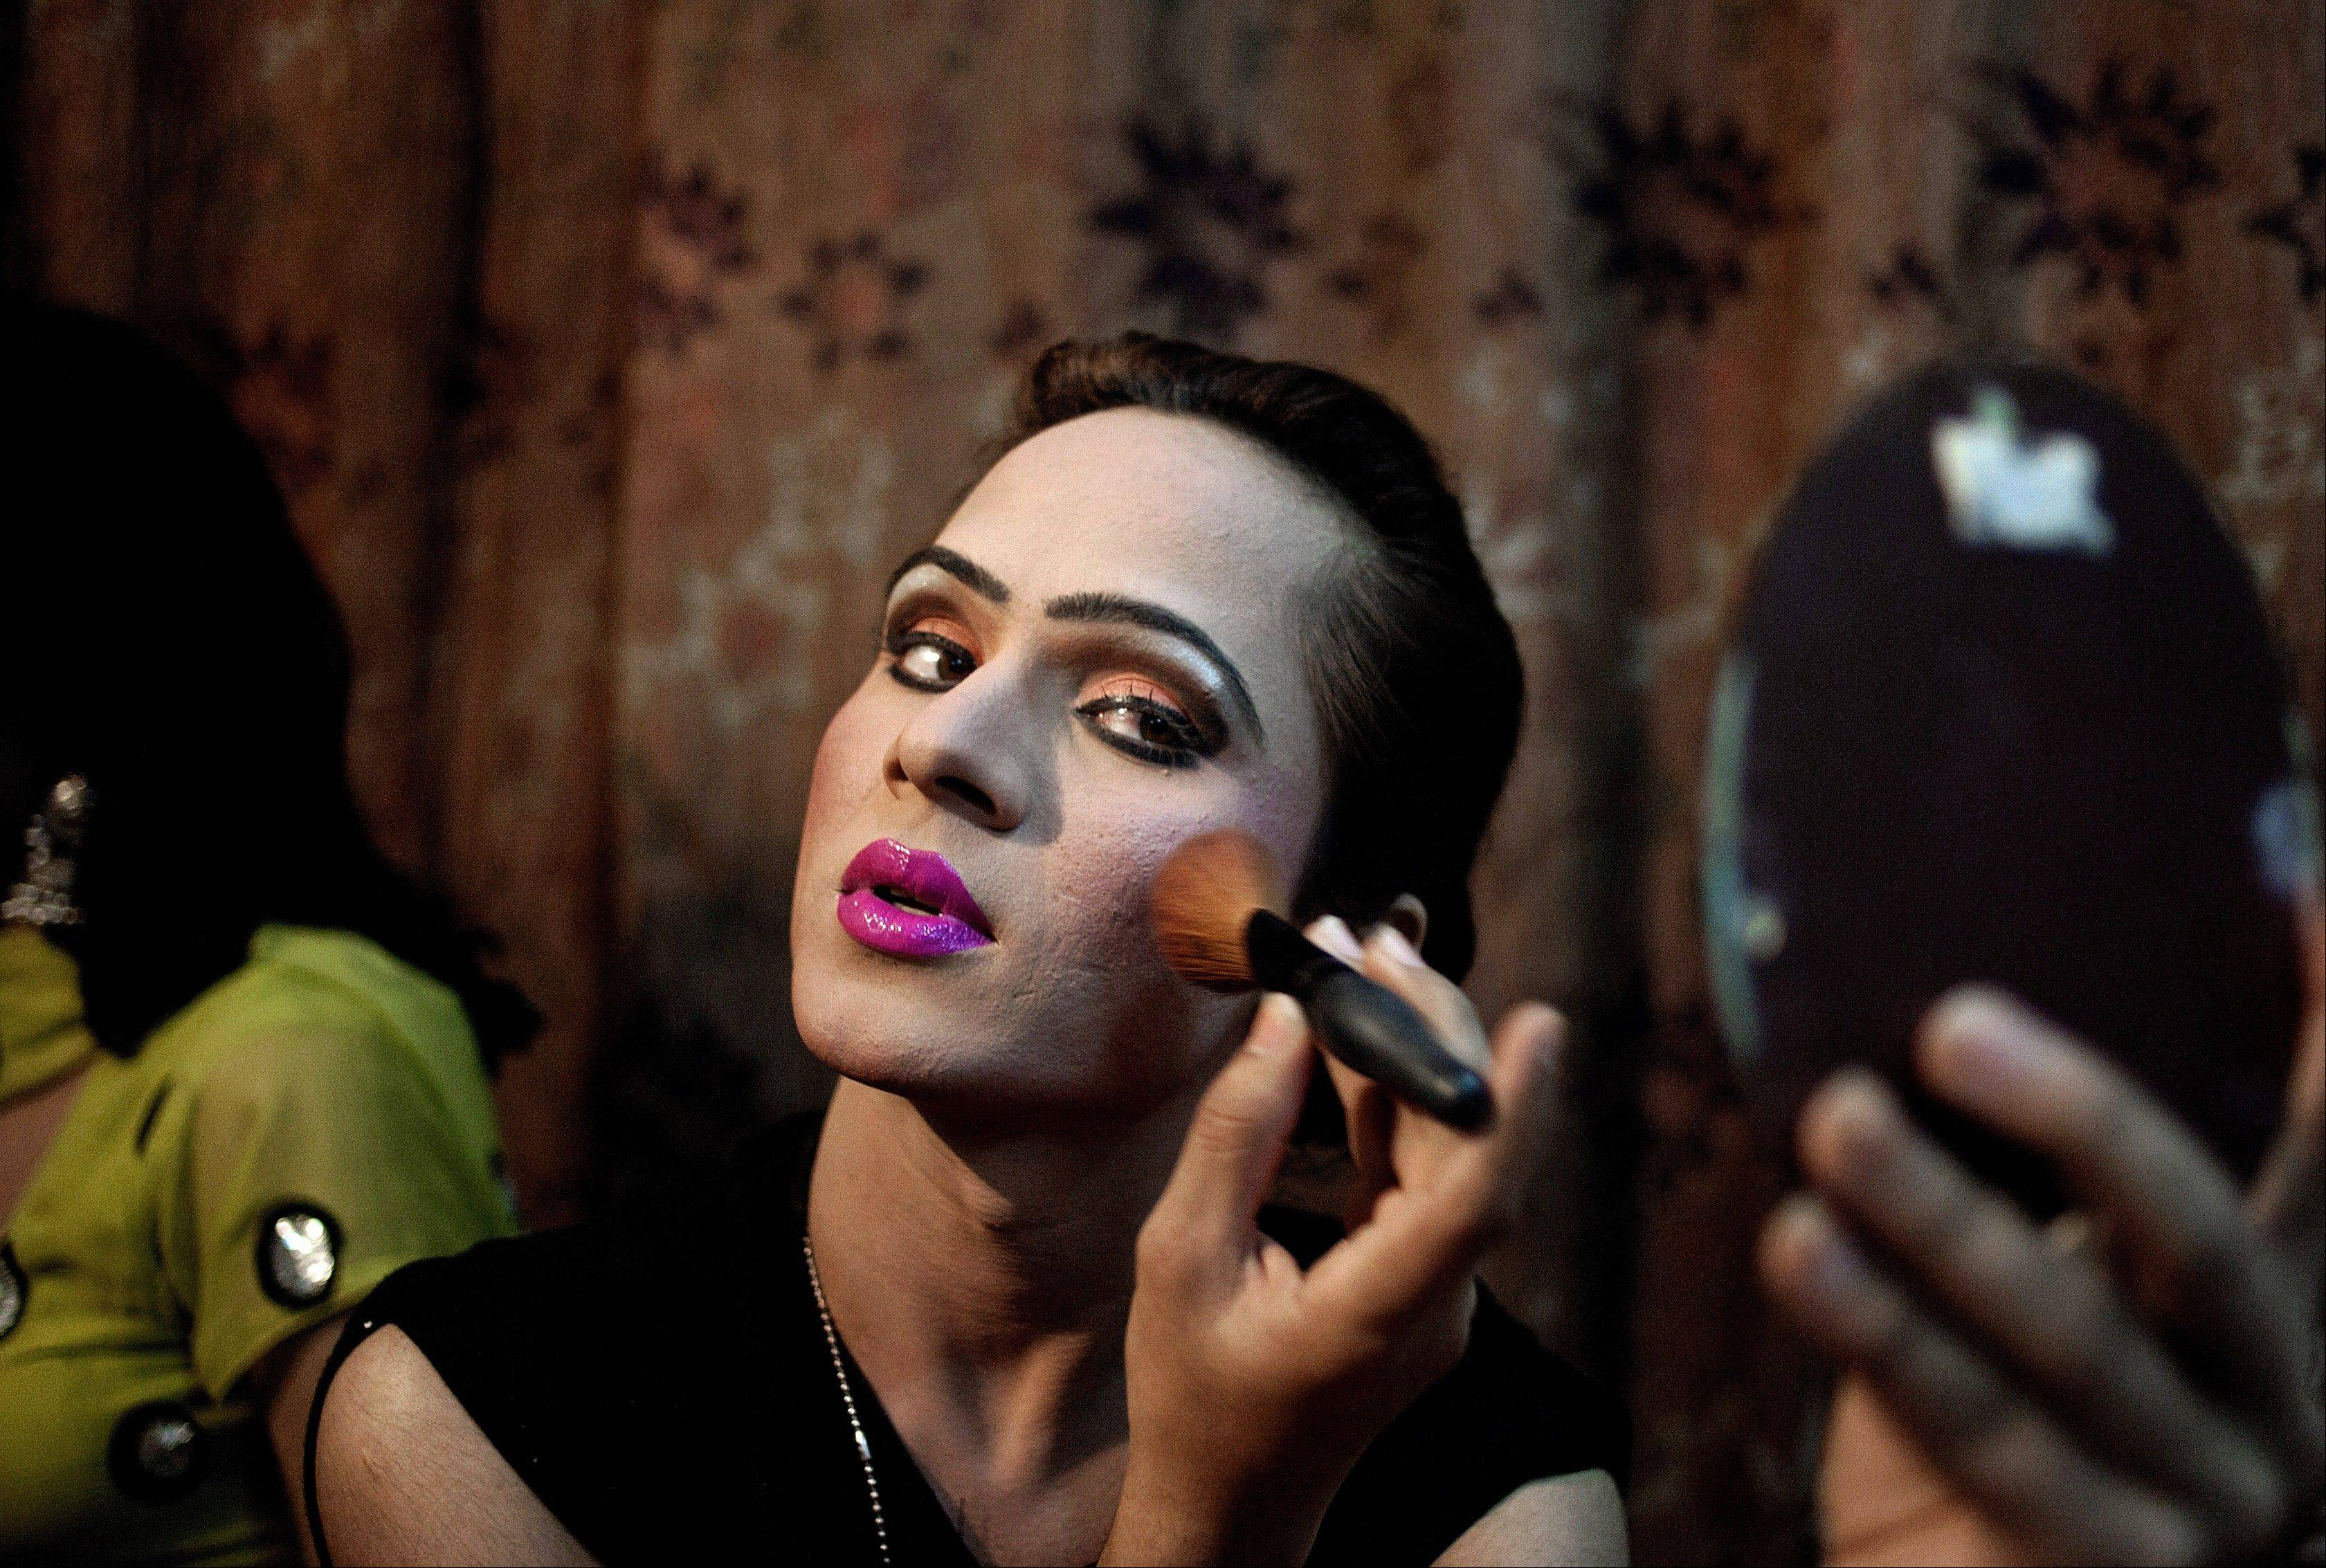 Kate Heart, 19, a Pakistani transgender, applies makeup before heading to a wedding party where she will perform. Transgender people live in a tenuous position in conservative Pakistan, where the roles of the sexes are traditionally starkly drawn. One role where they are tolerated is as dancers at weddings and other celebrations at which men and women are strictly segregated.